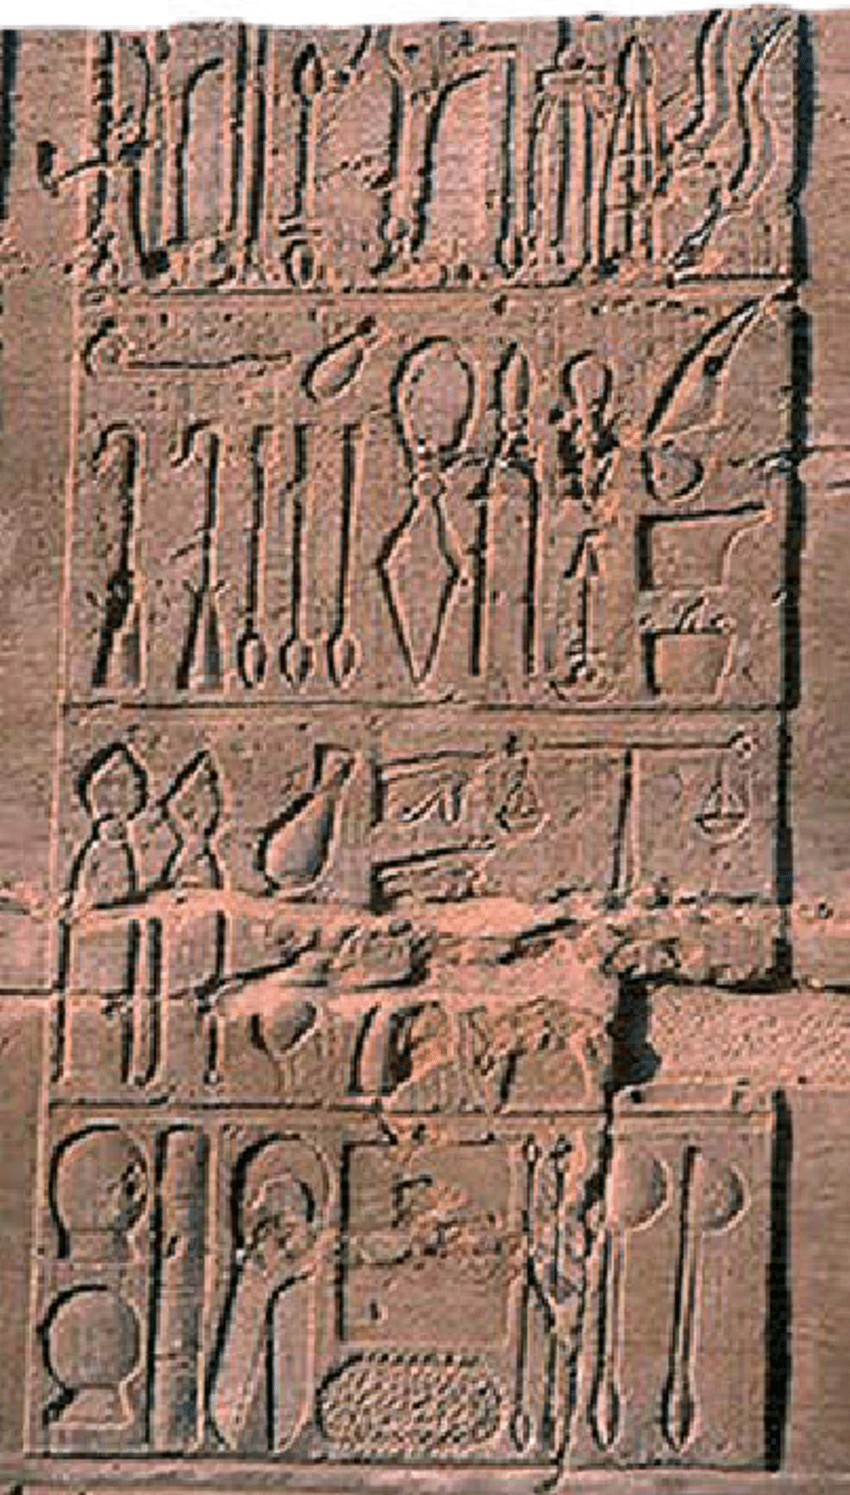 hight resolution of ancient medical instruments in inscription on the temple of kom ombo egypt ptolemaic period